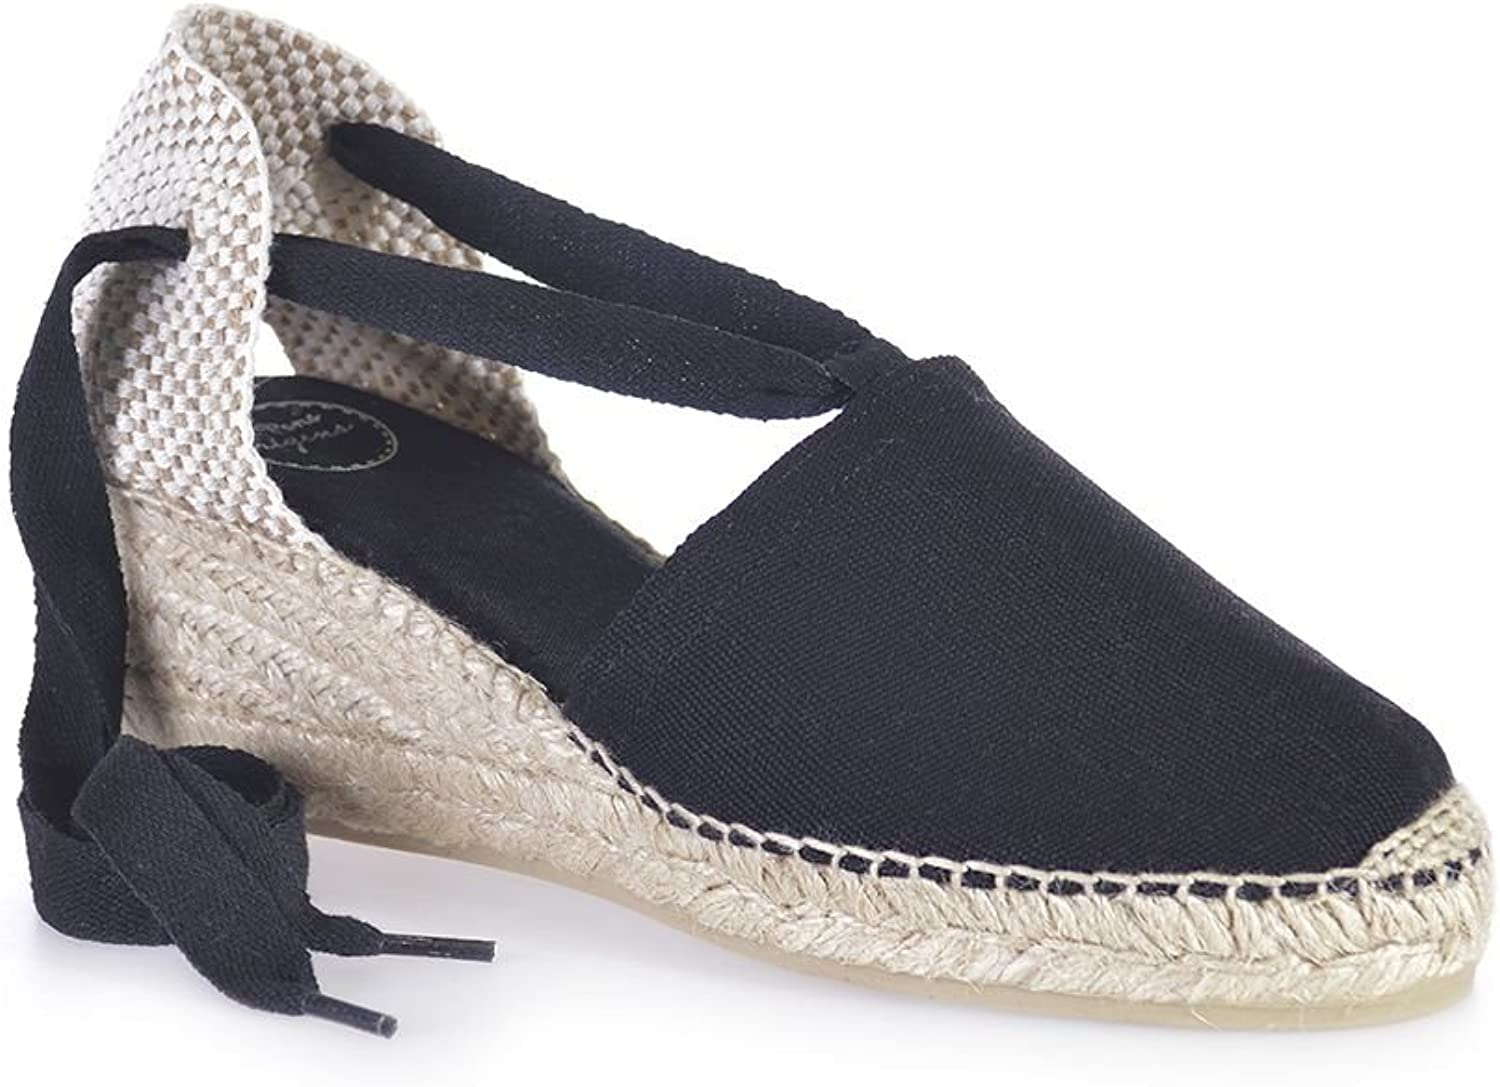 Toni Pons Valencia - Vegan Espadrille for Woman Made in Fabric.